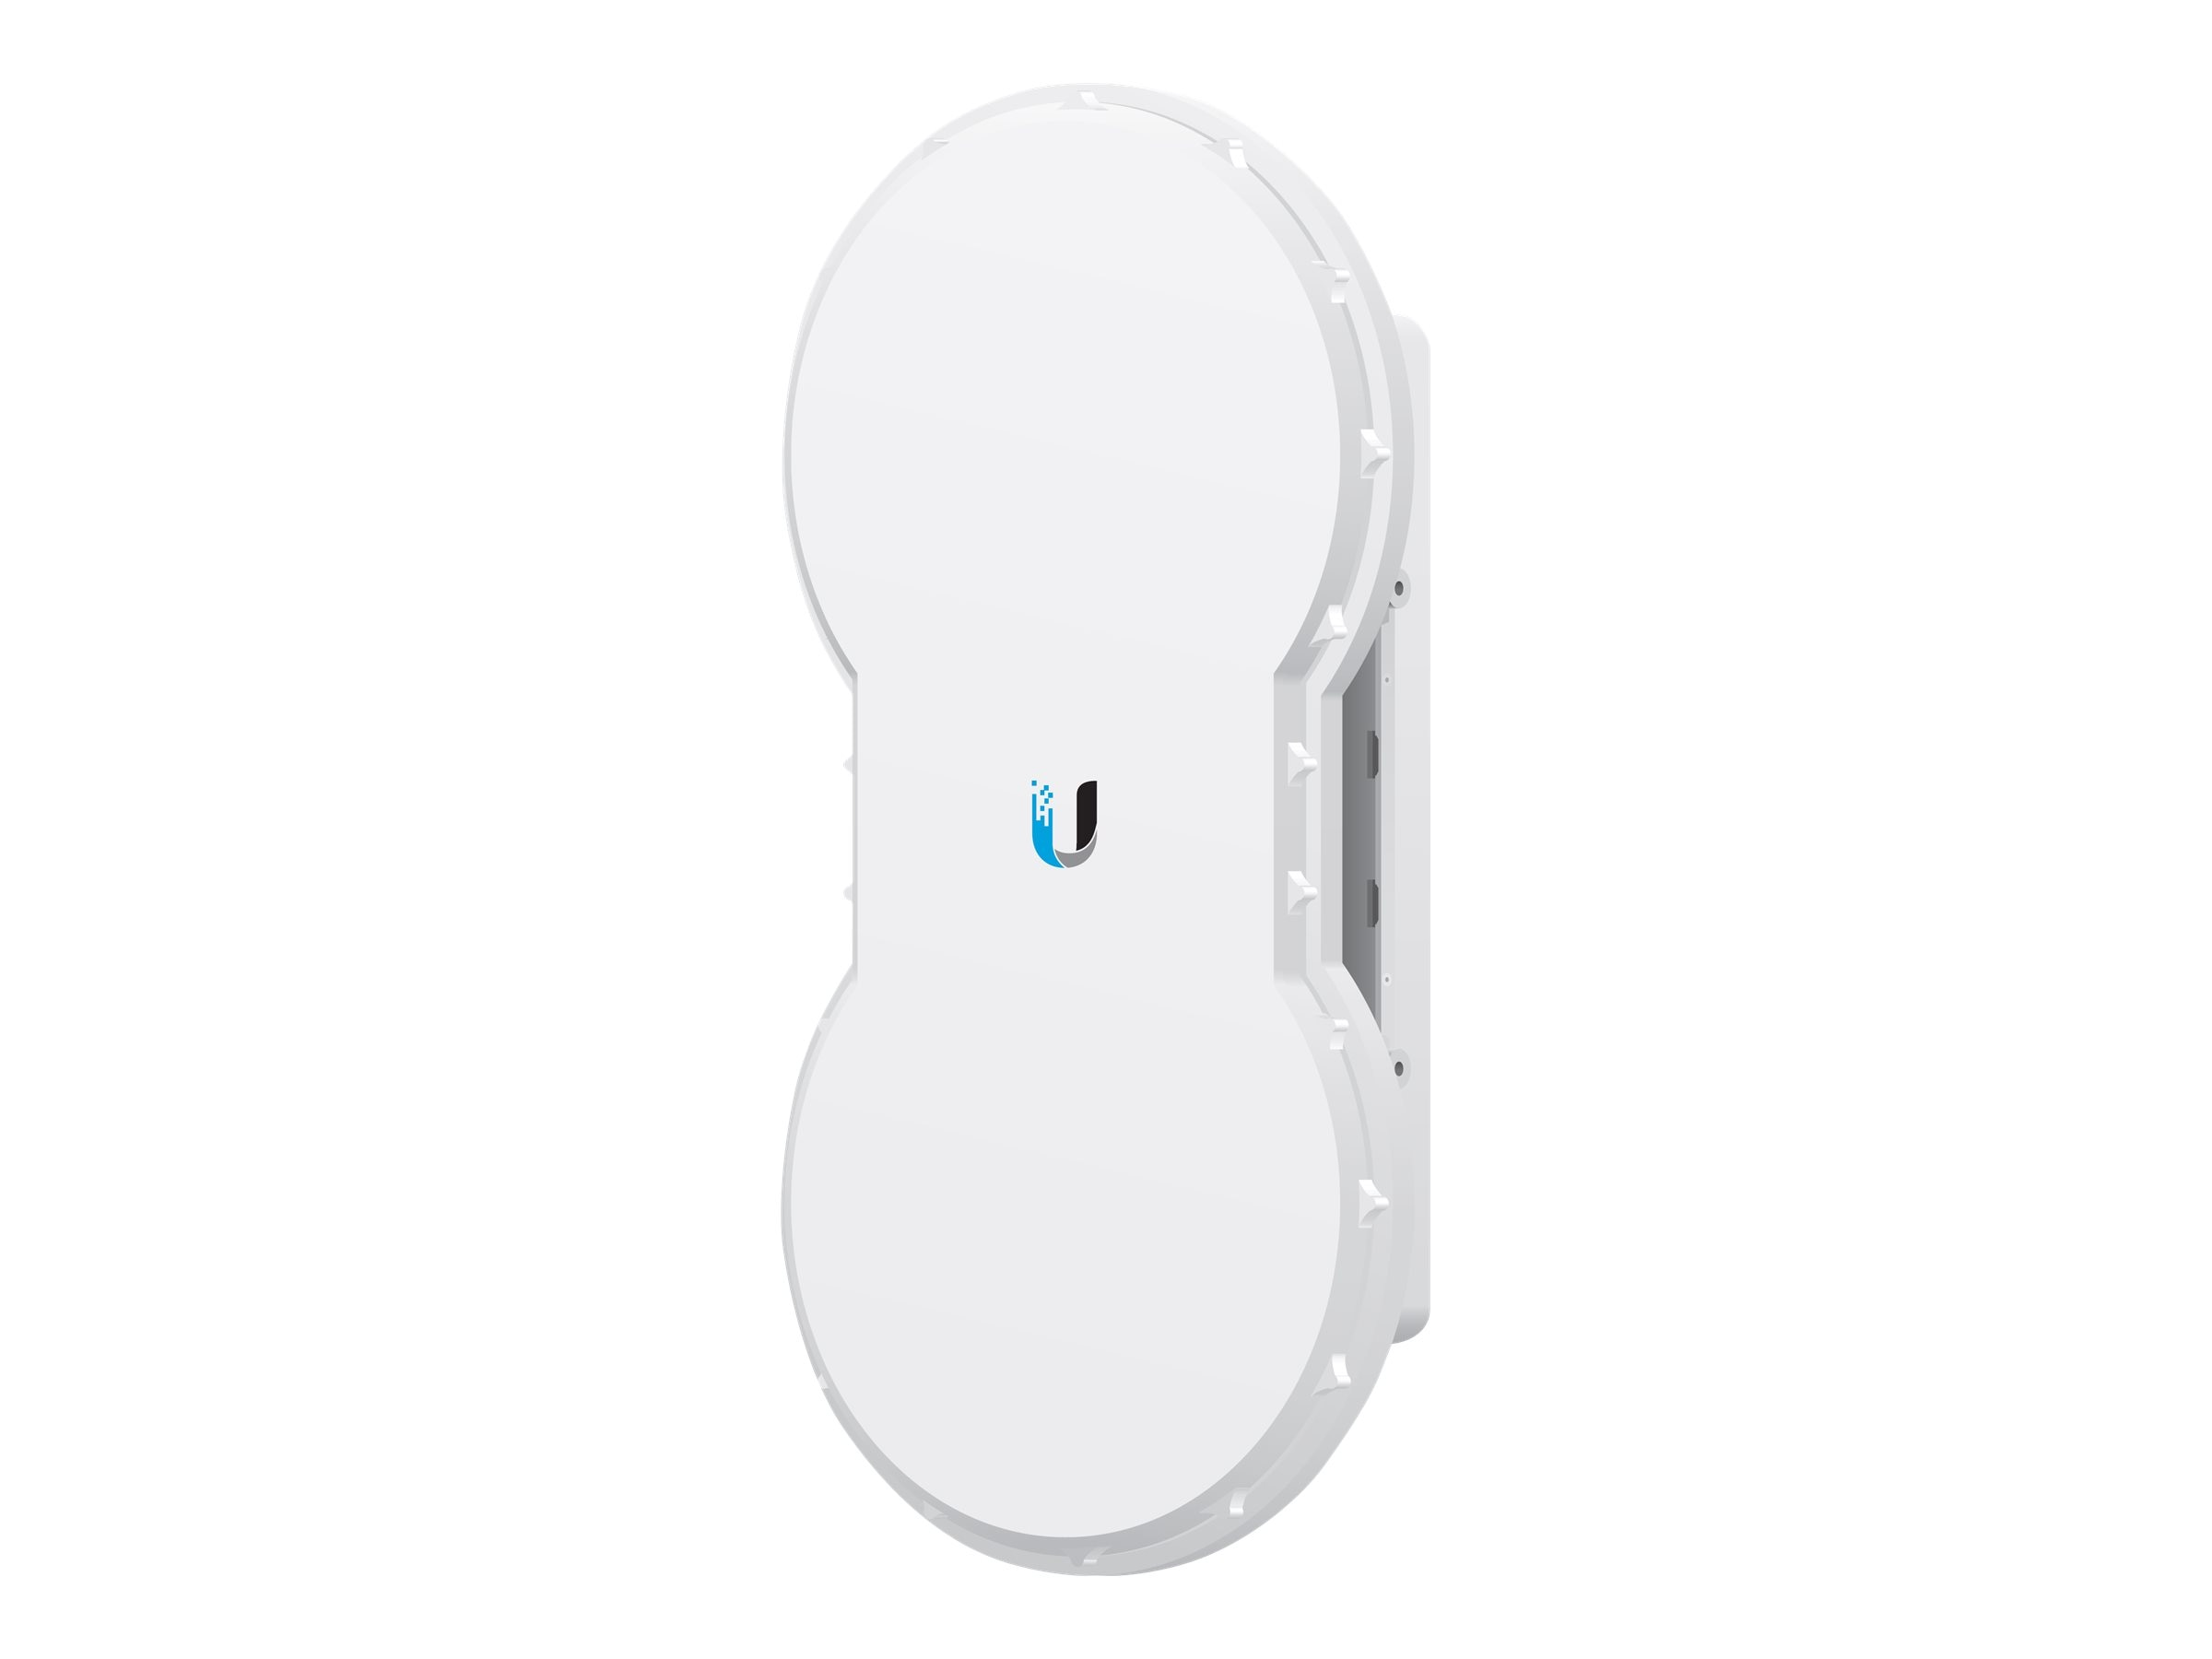 Ubiquiti airFiber 5GHz Wireless Bridge, AF-5U